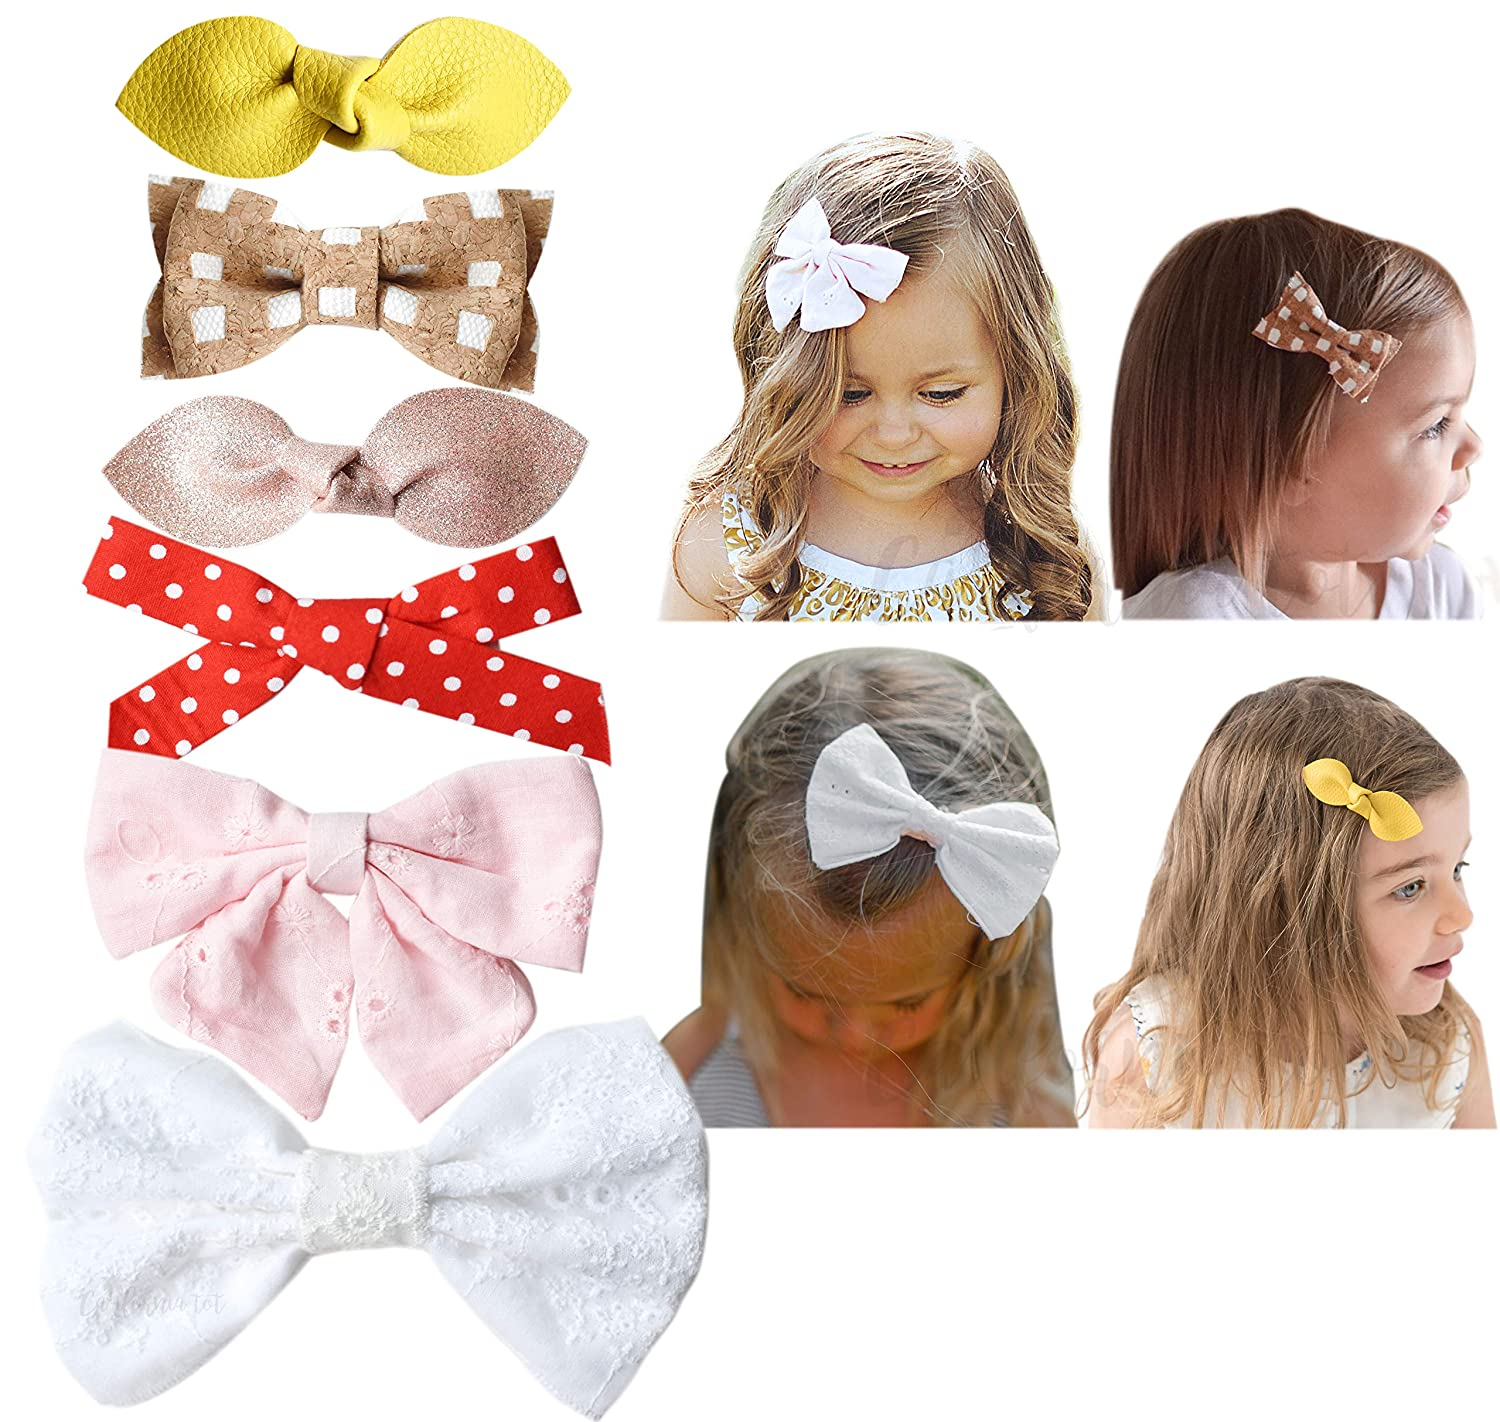 California Tot Premium Faux Leather Bow Hair Clips for Toddler, Girls, Mixed Set of 4 Mixed Set of 4 (Boho Clip)